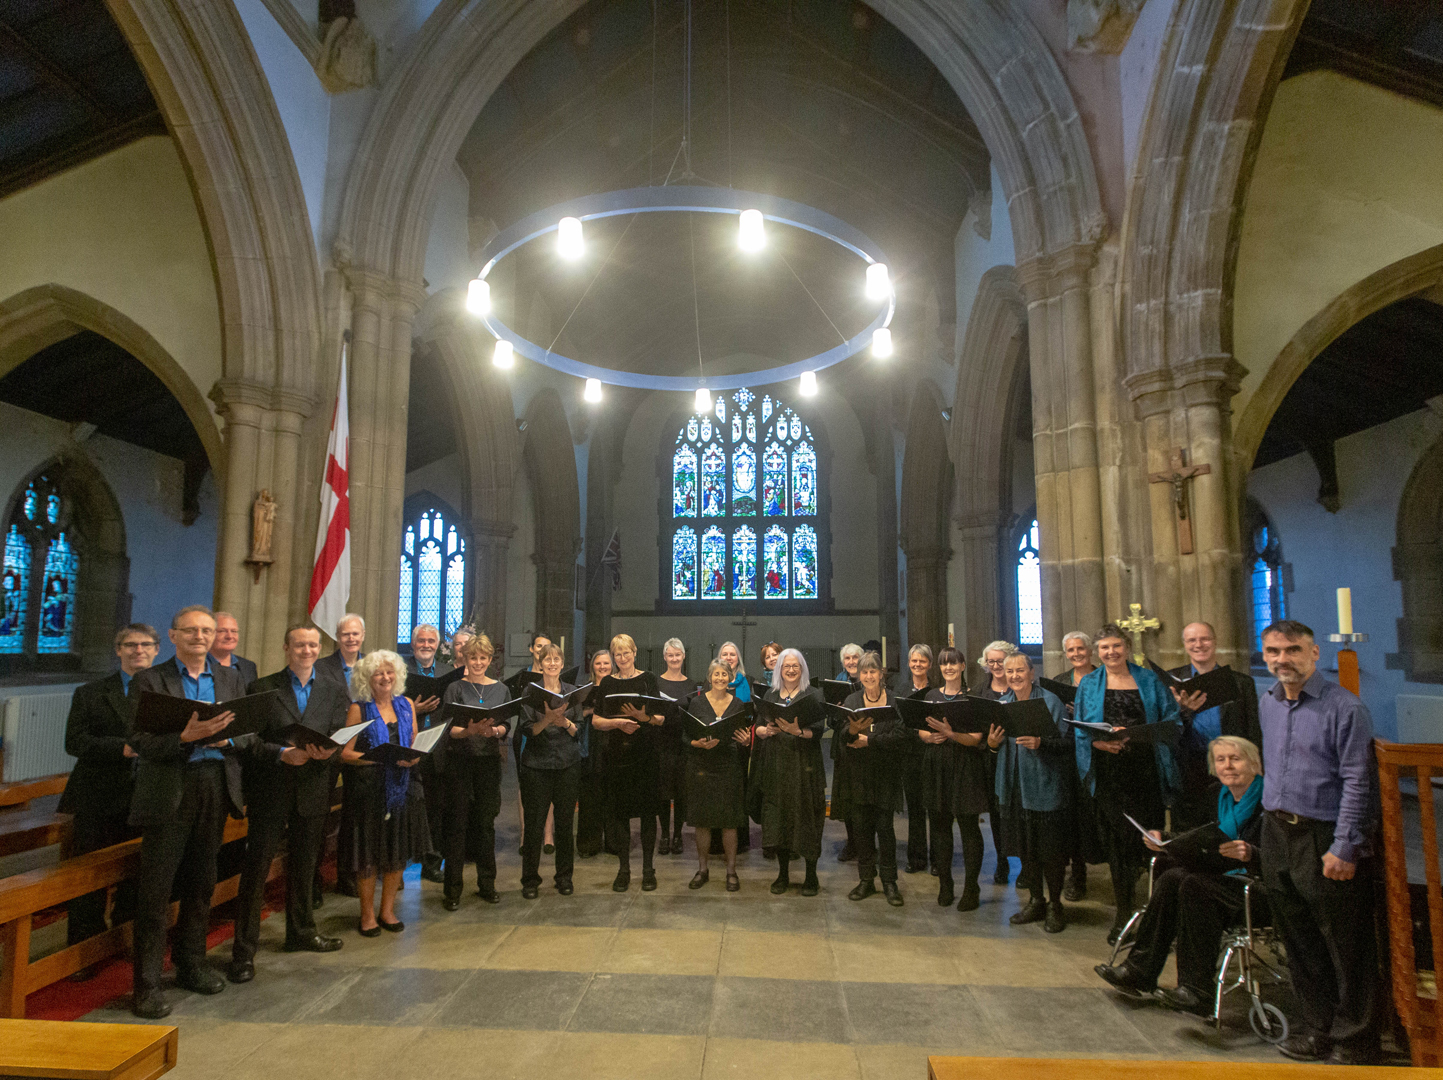 Hepton Singers  Winter Concert in Todmorden @ St Mary's Church | Heptonstall | United Kingdom